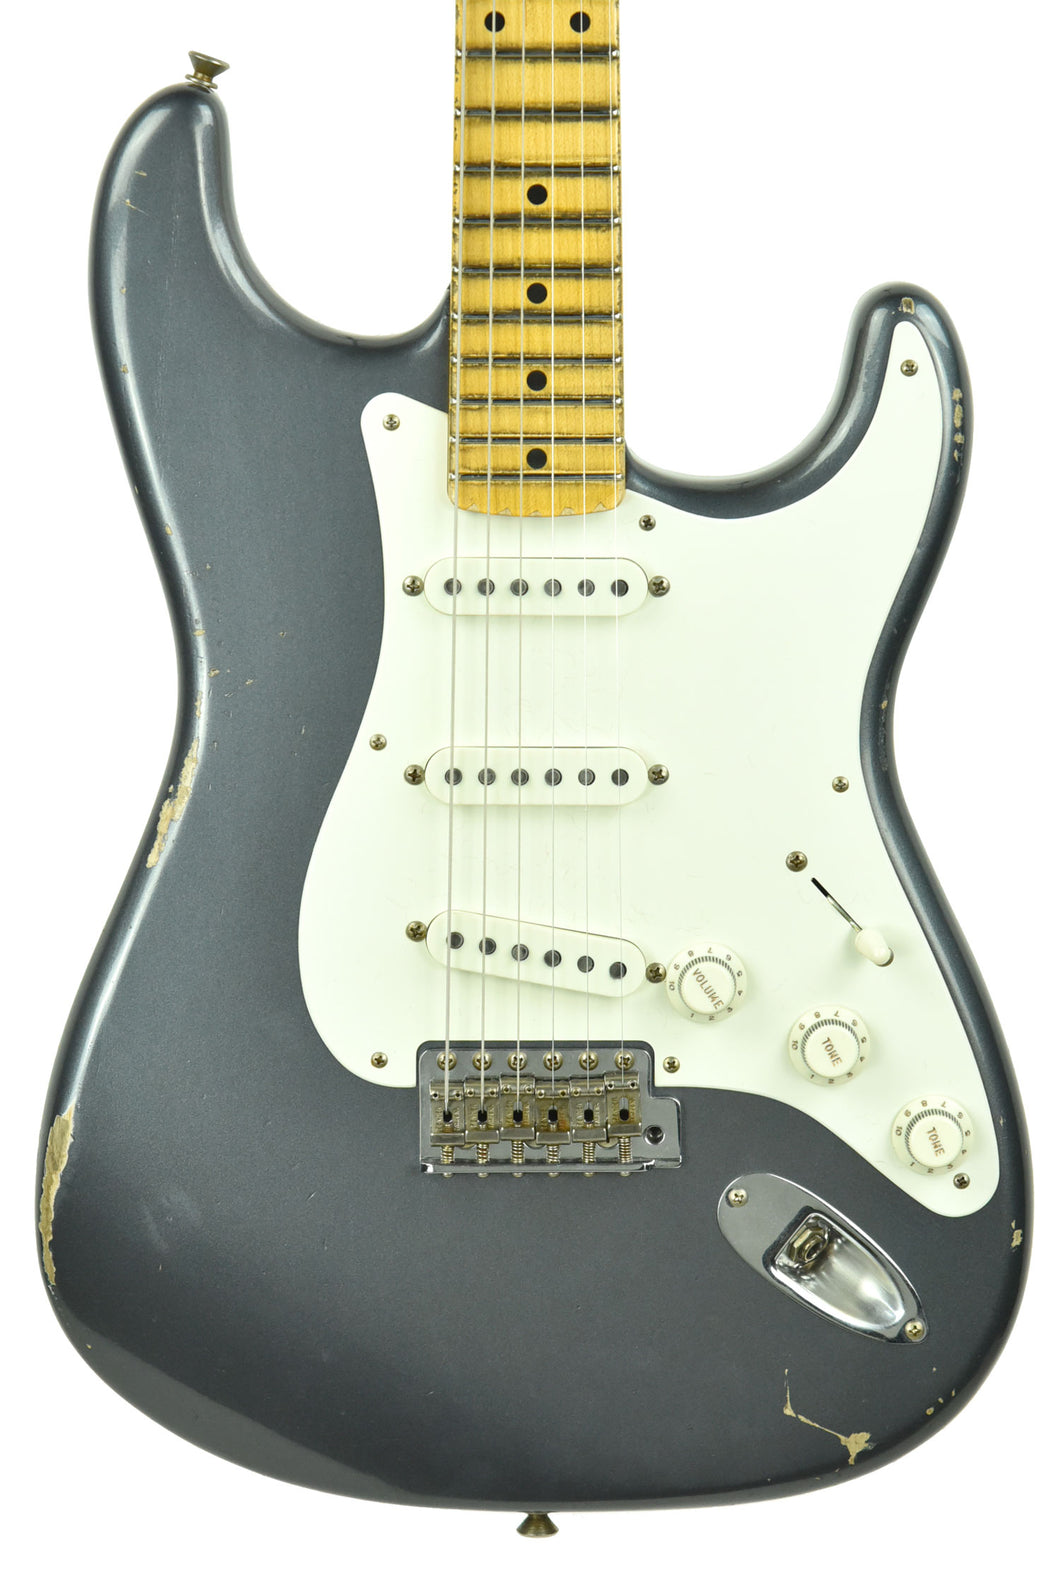 Fender Custom Shop 1956 Stratocaster Relic Masterbuilt by Carlos Lopez in Charcoal Frost Metallic CZ544493